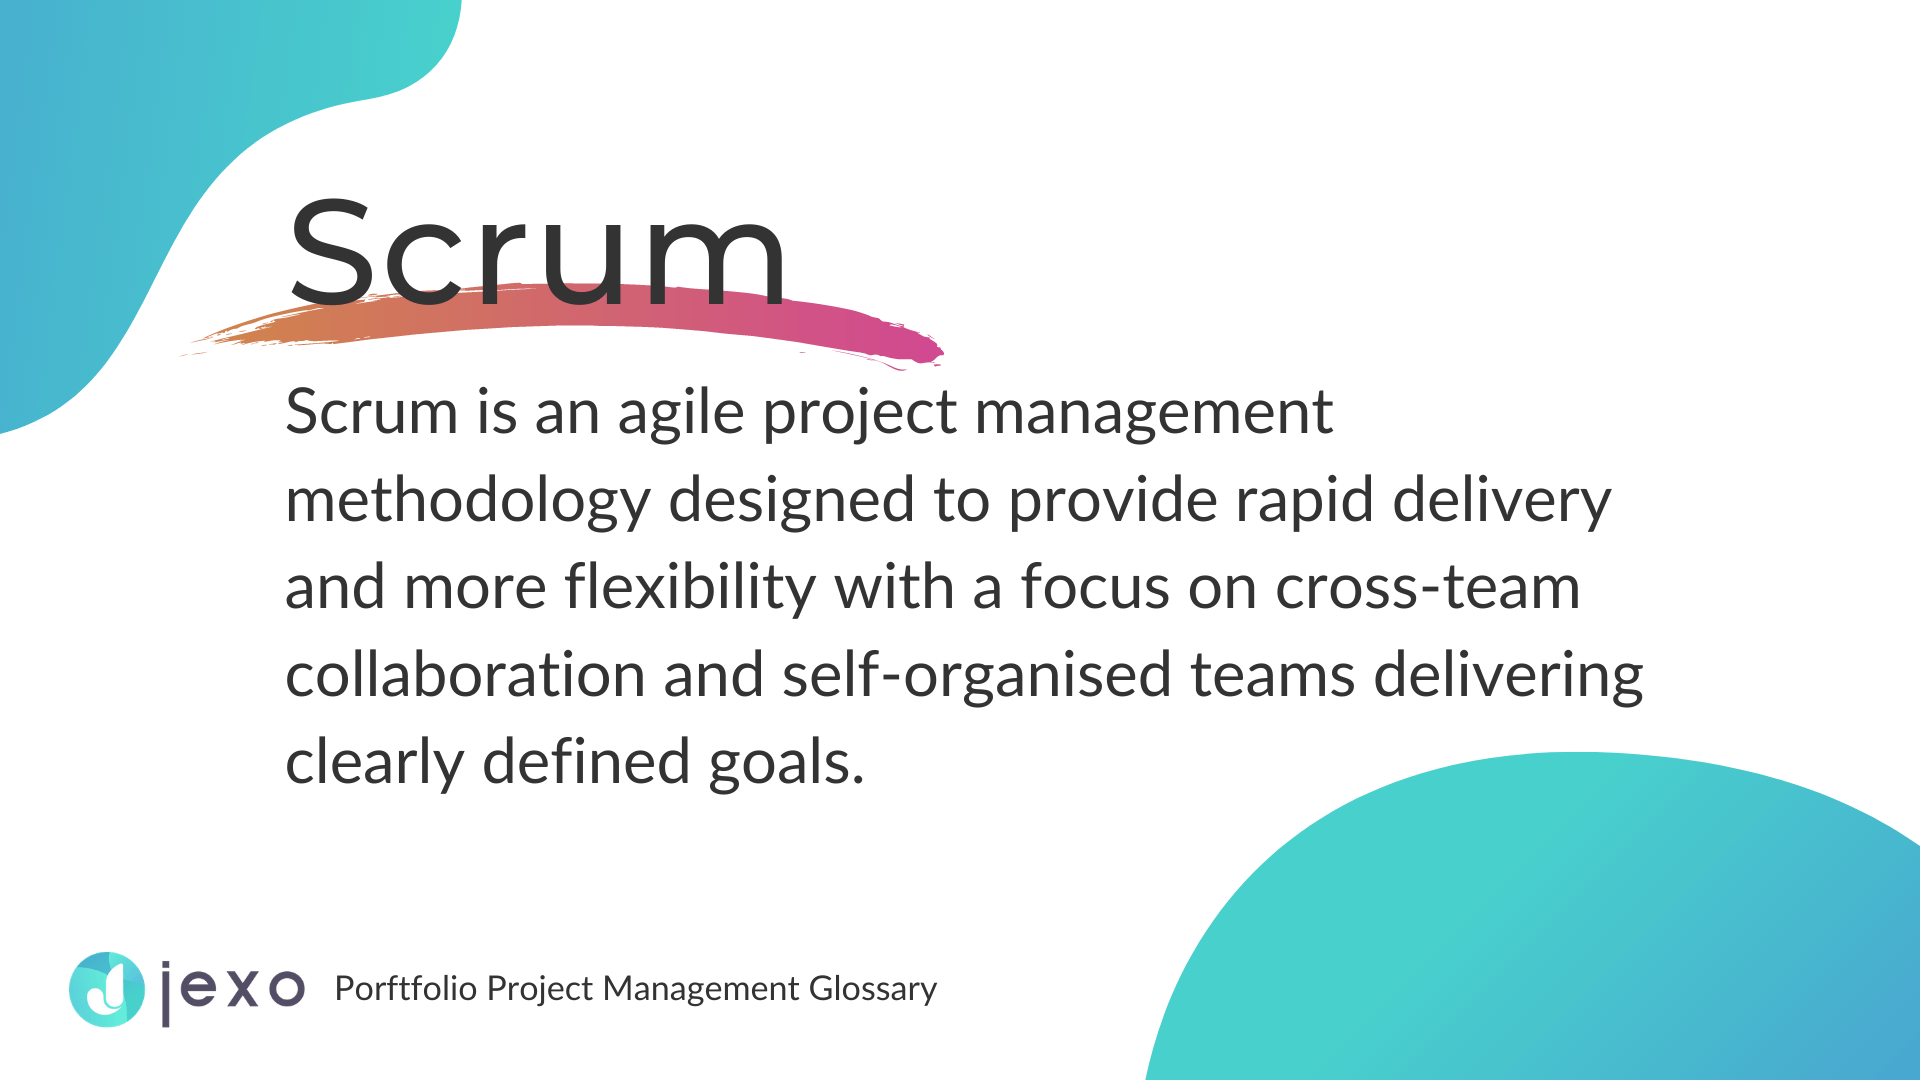 Definition: What is Scrum in project management?